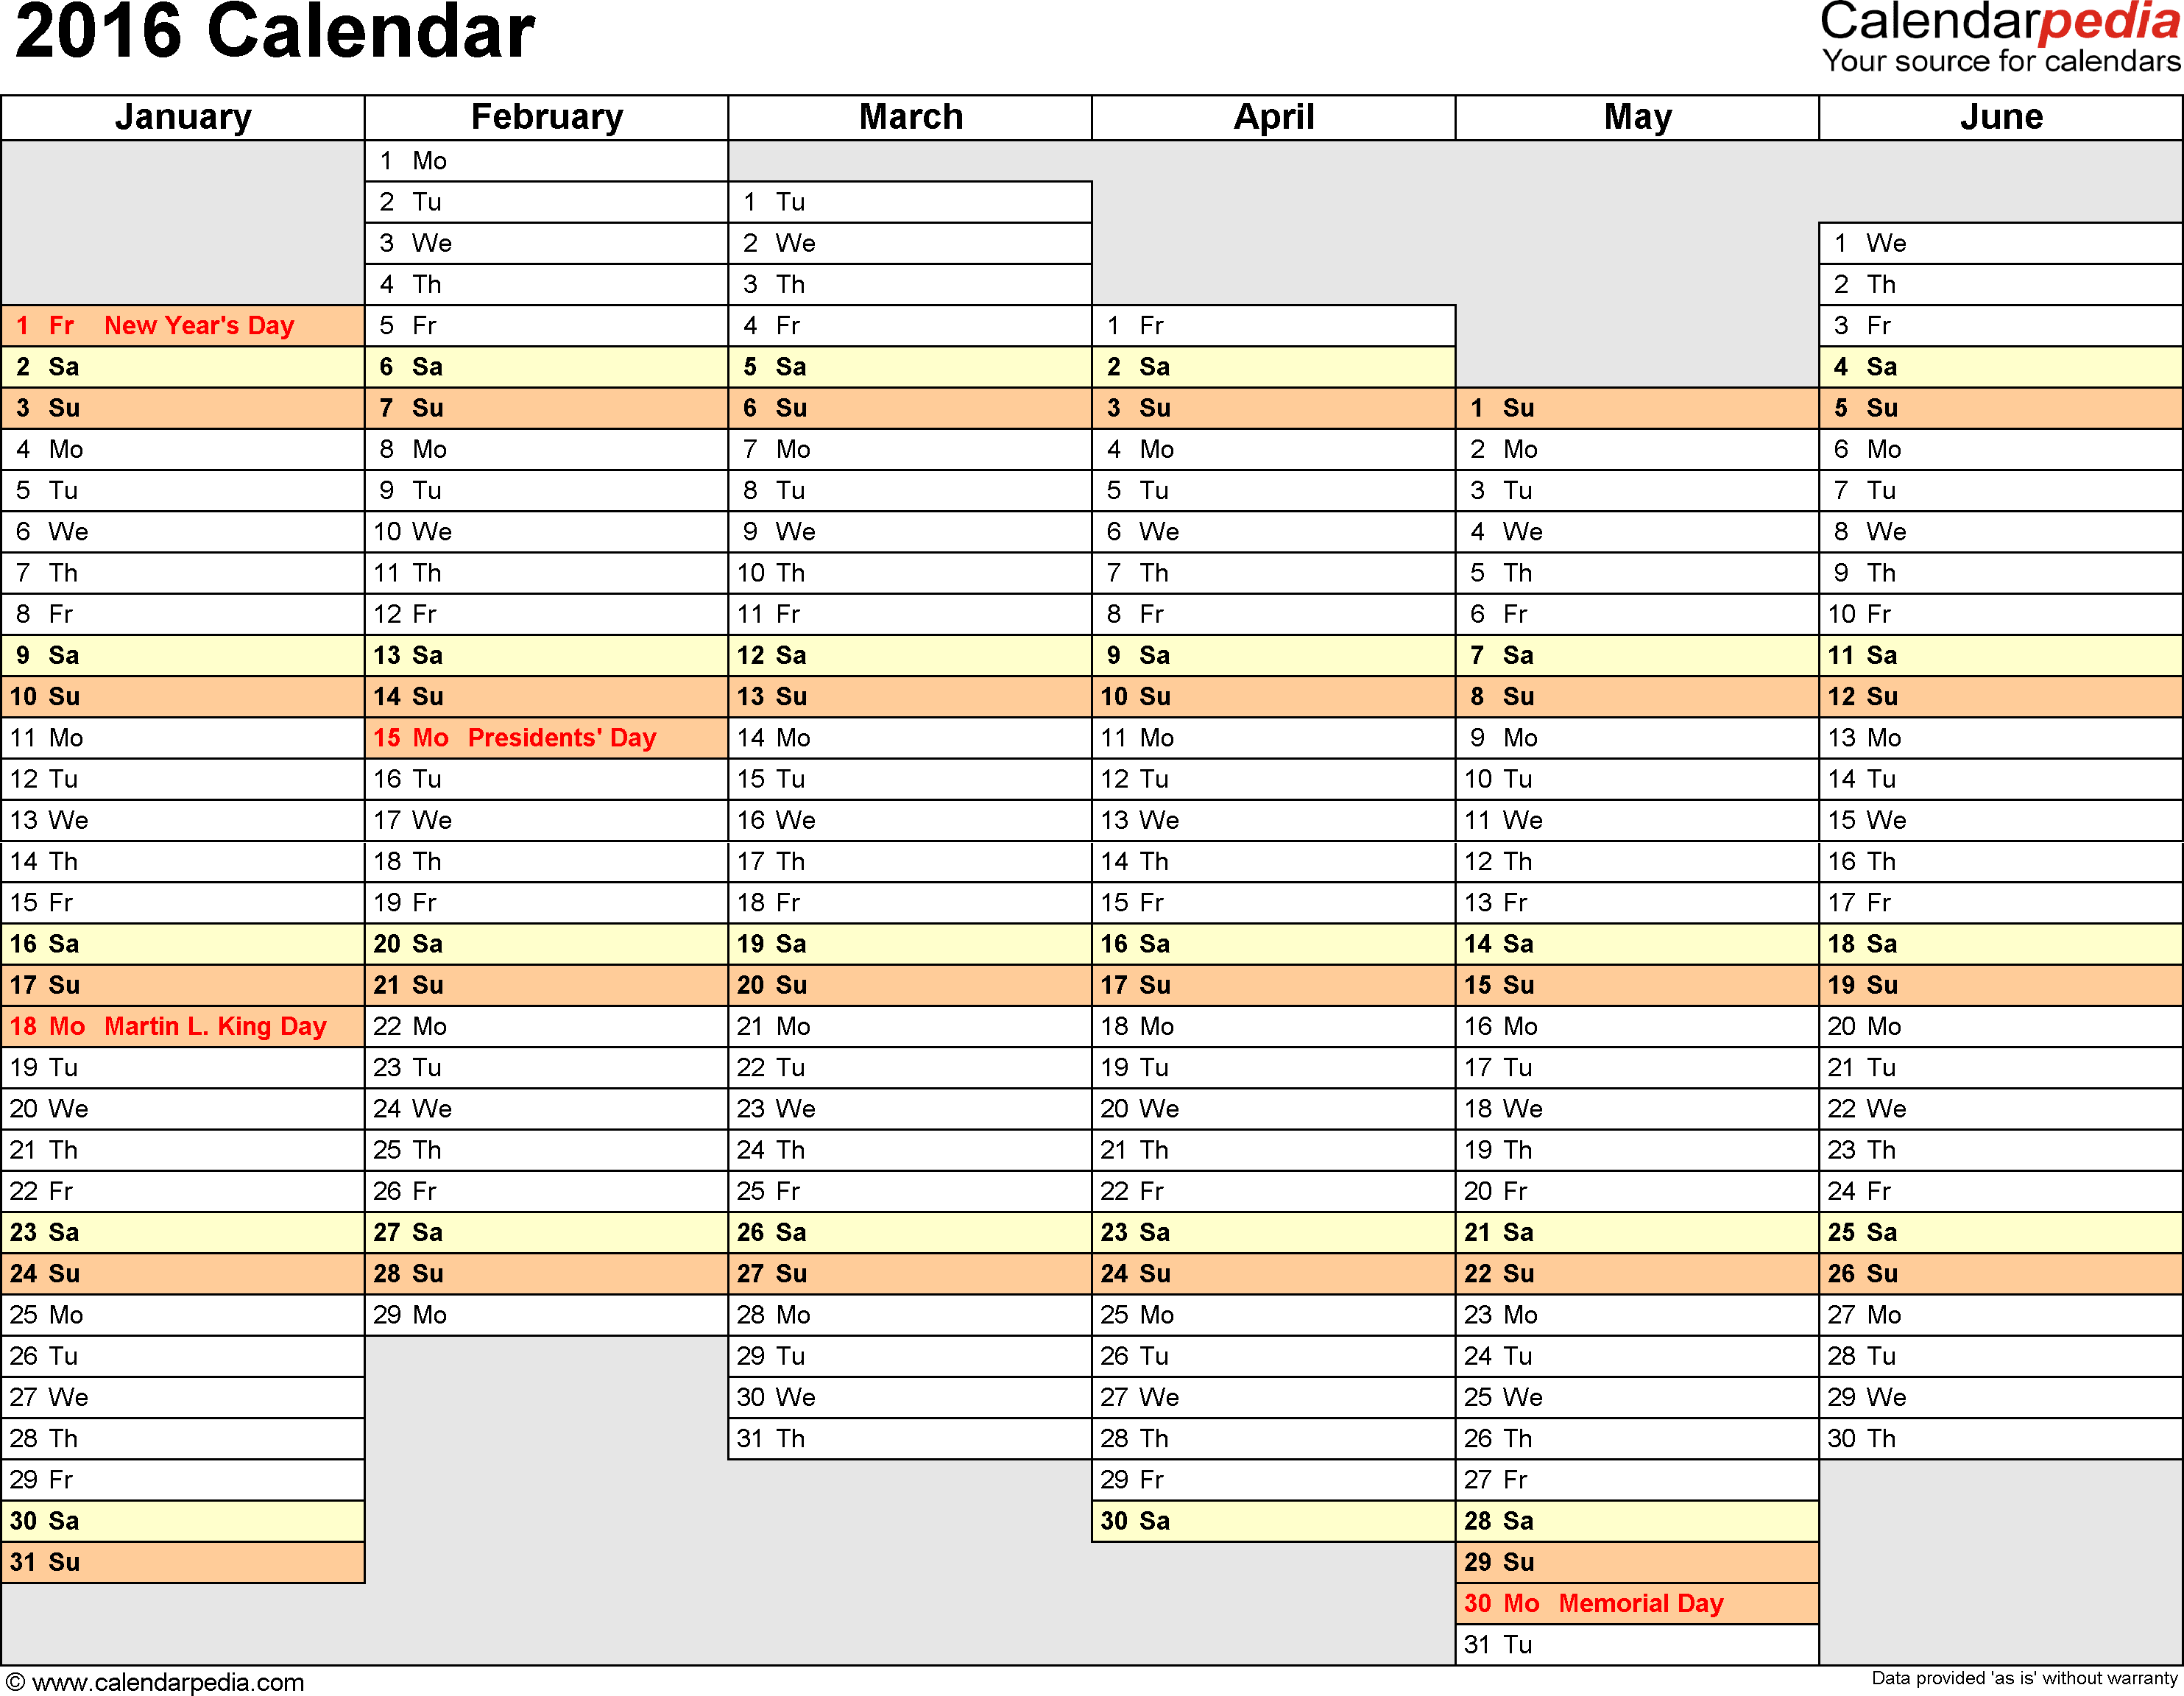 Project Timeline Spreadsheet and 2016 Calendar 16 Free Printable Excel Templates Xls